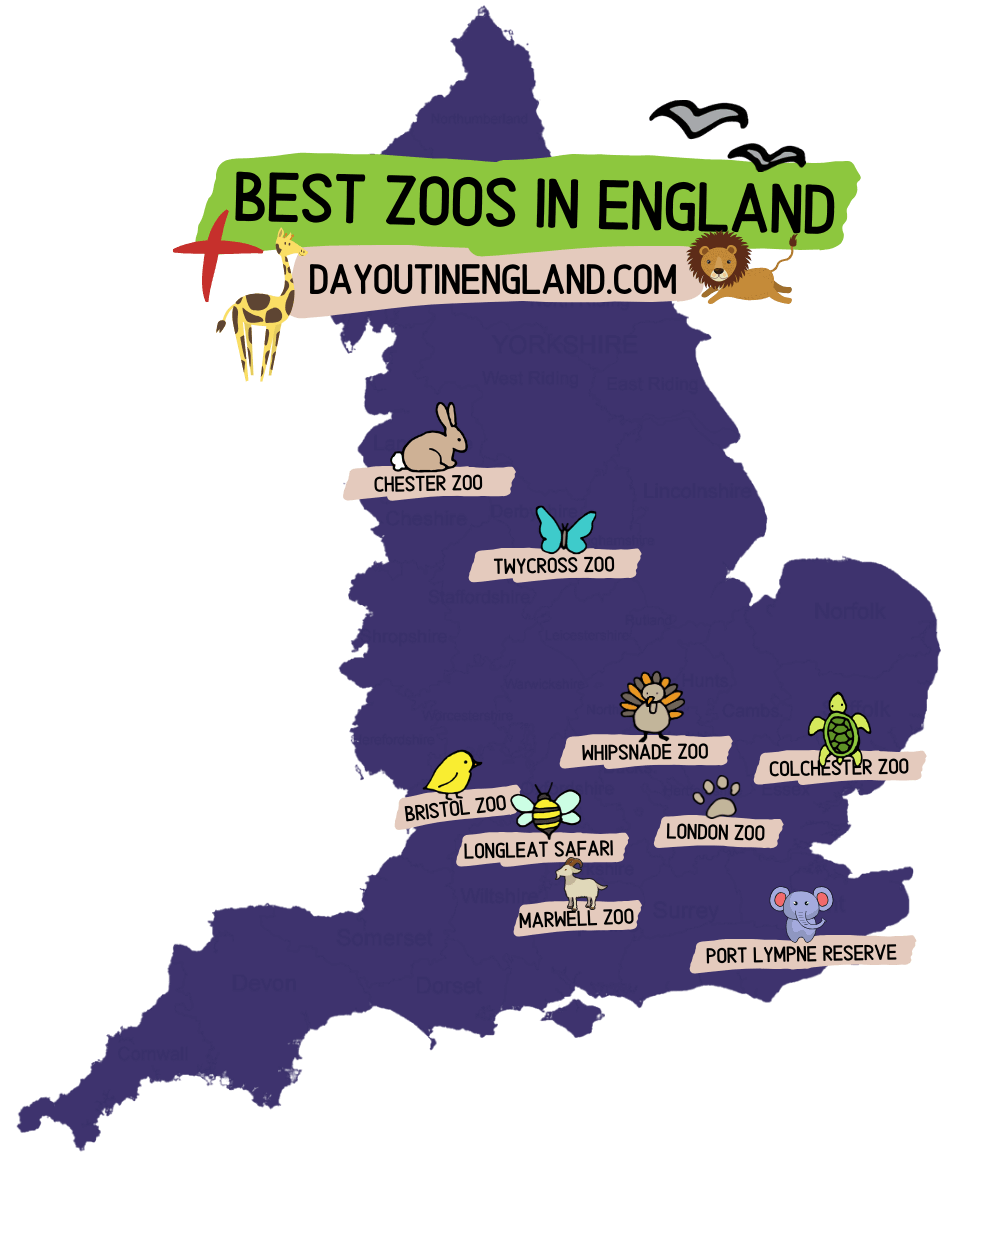 Best zoos in england